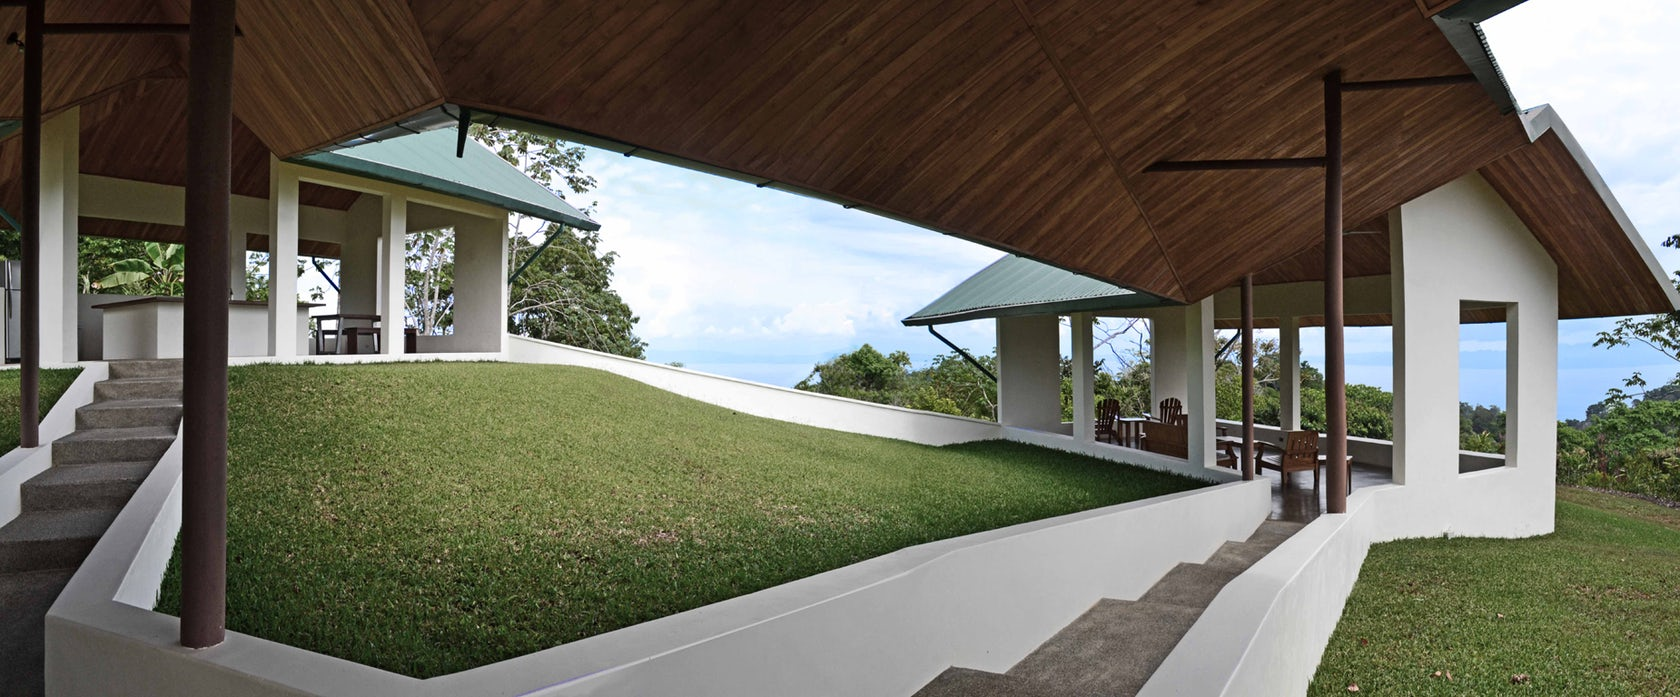 Casa osa architizer for Does new roof affect appraisal